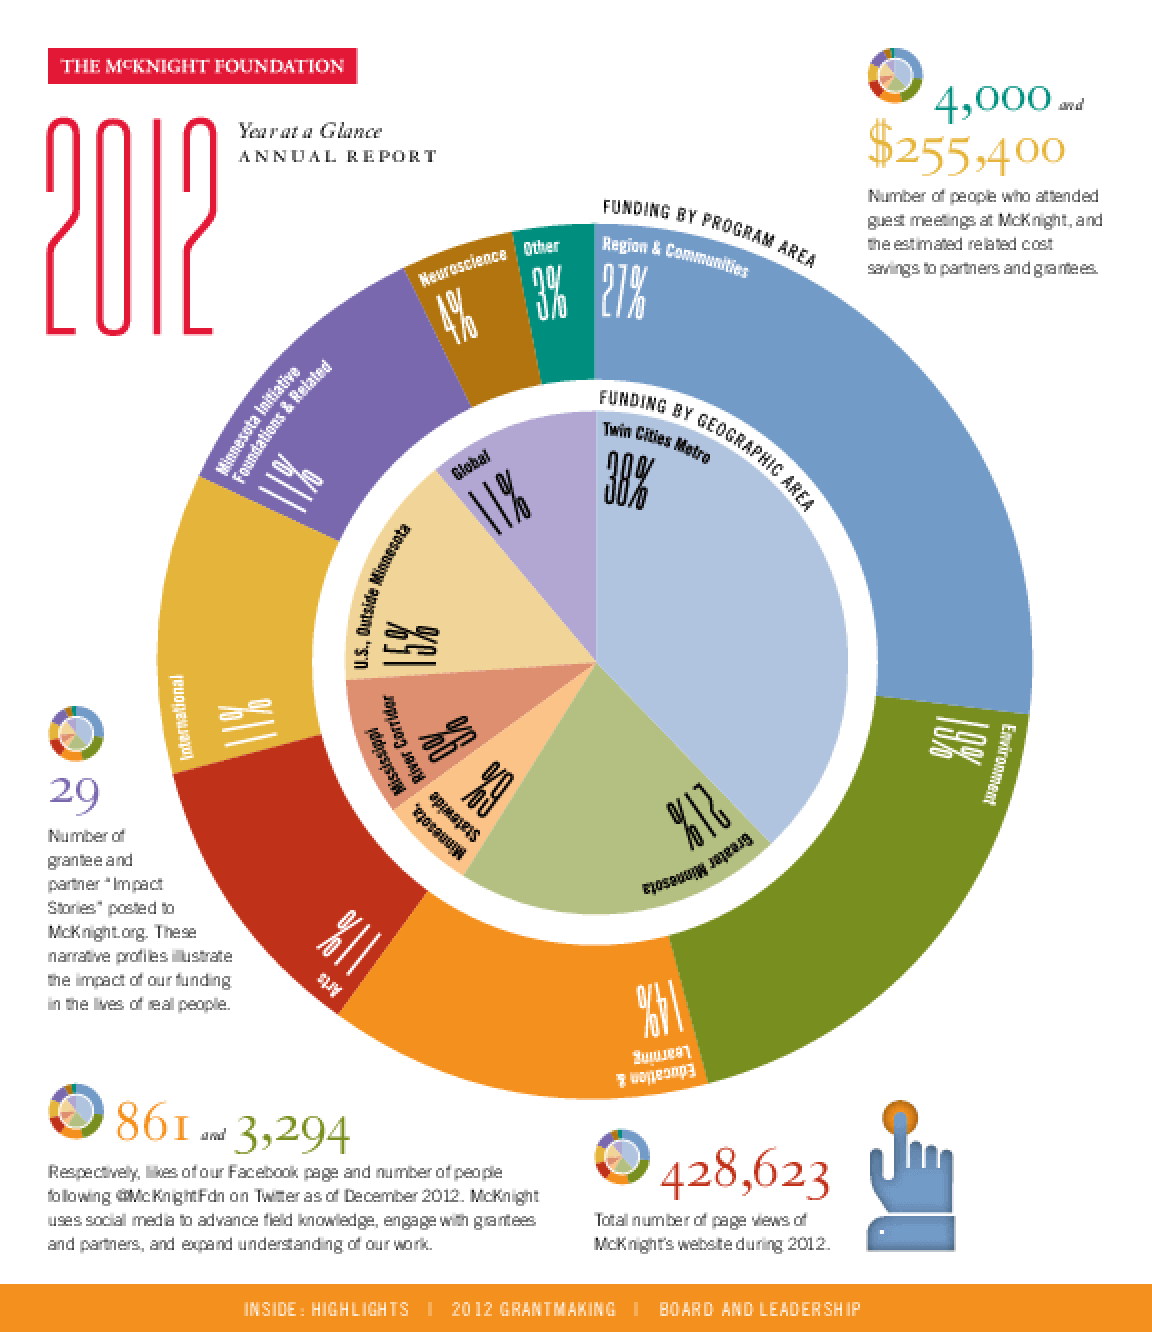 McKnight Foundation 2012 Year at a Glance: Annual Report